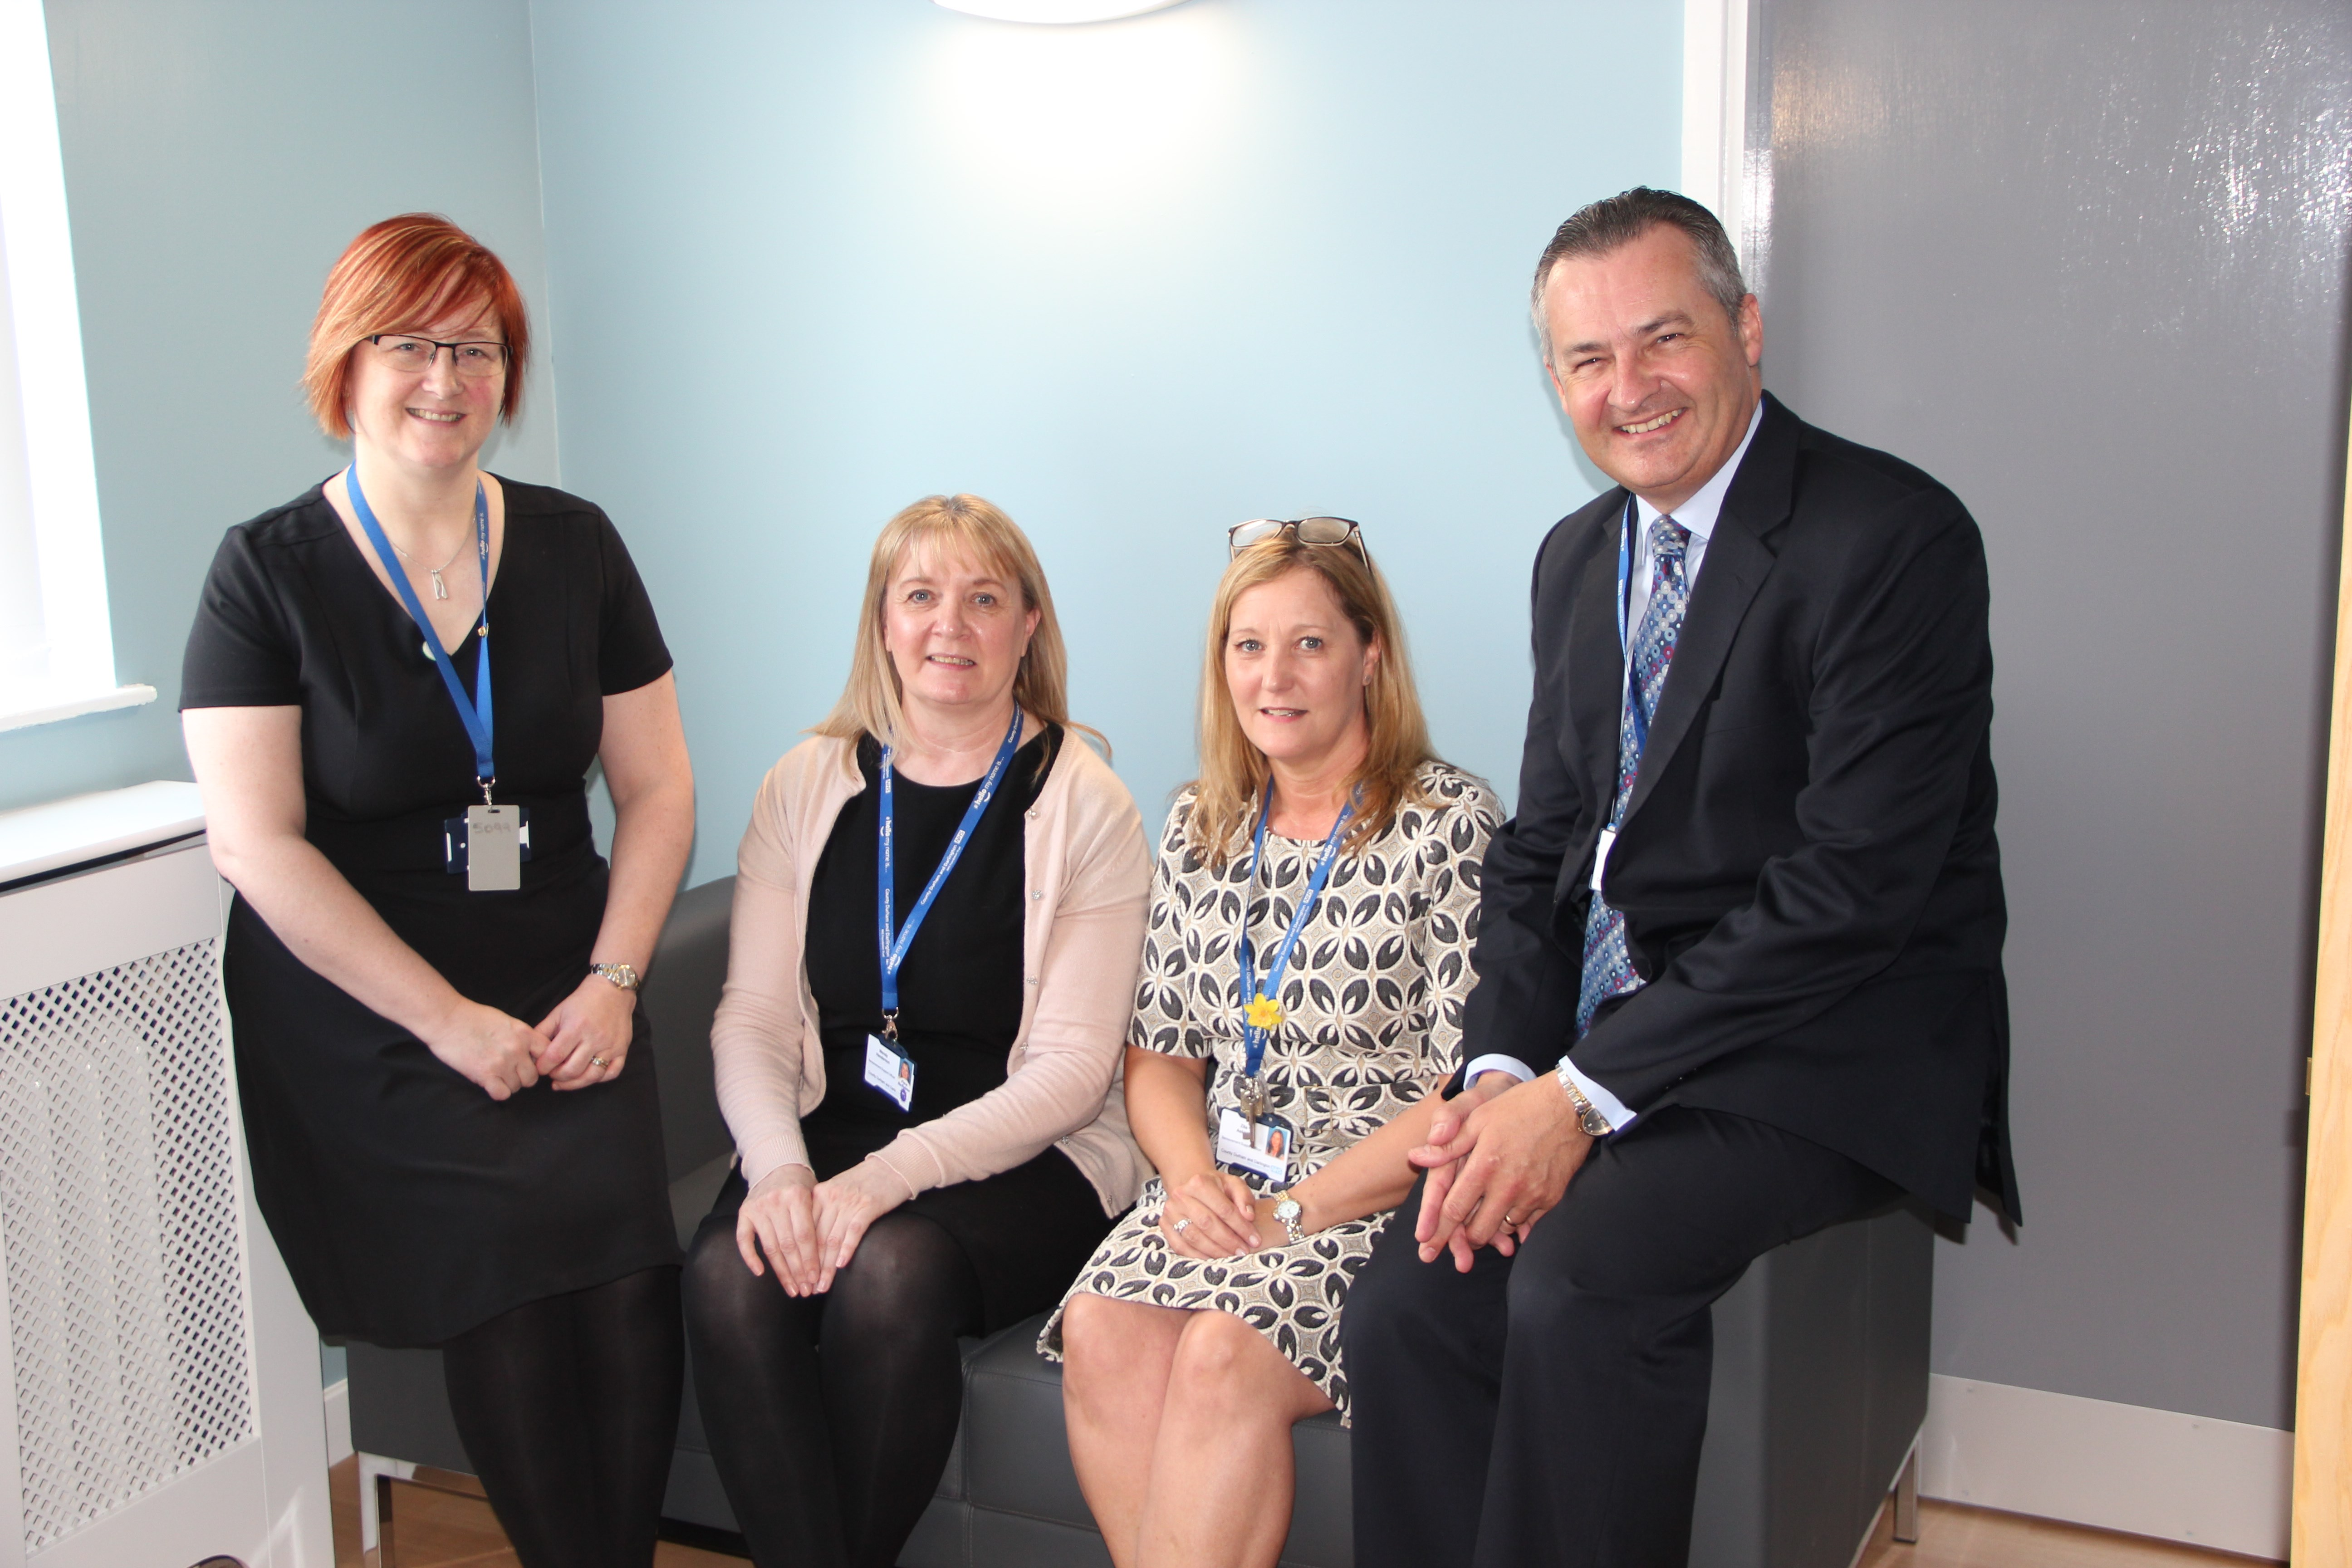 Bereavement service launch